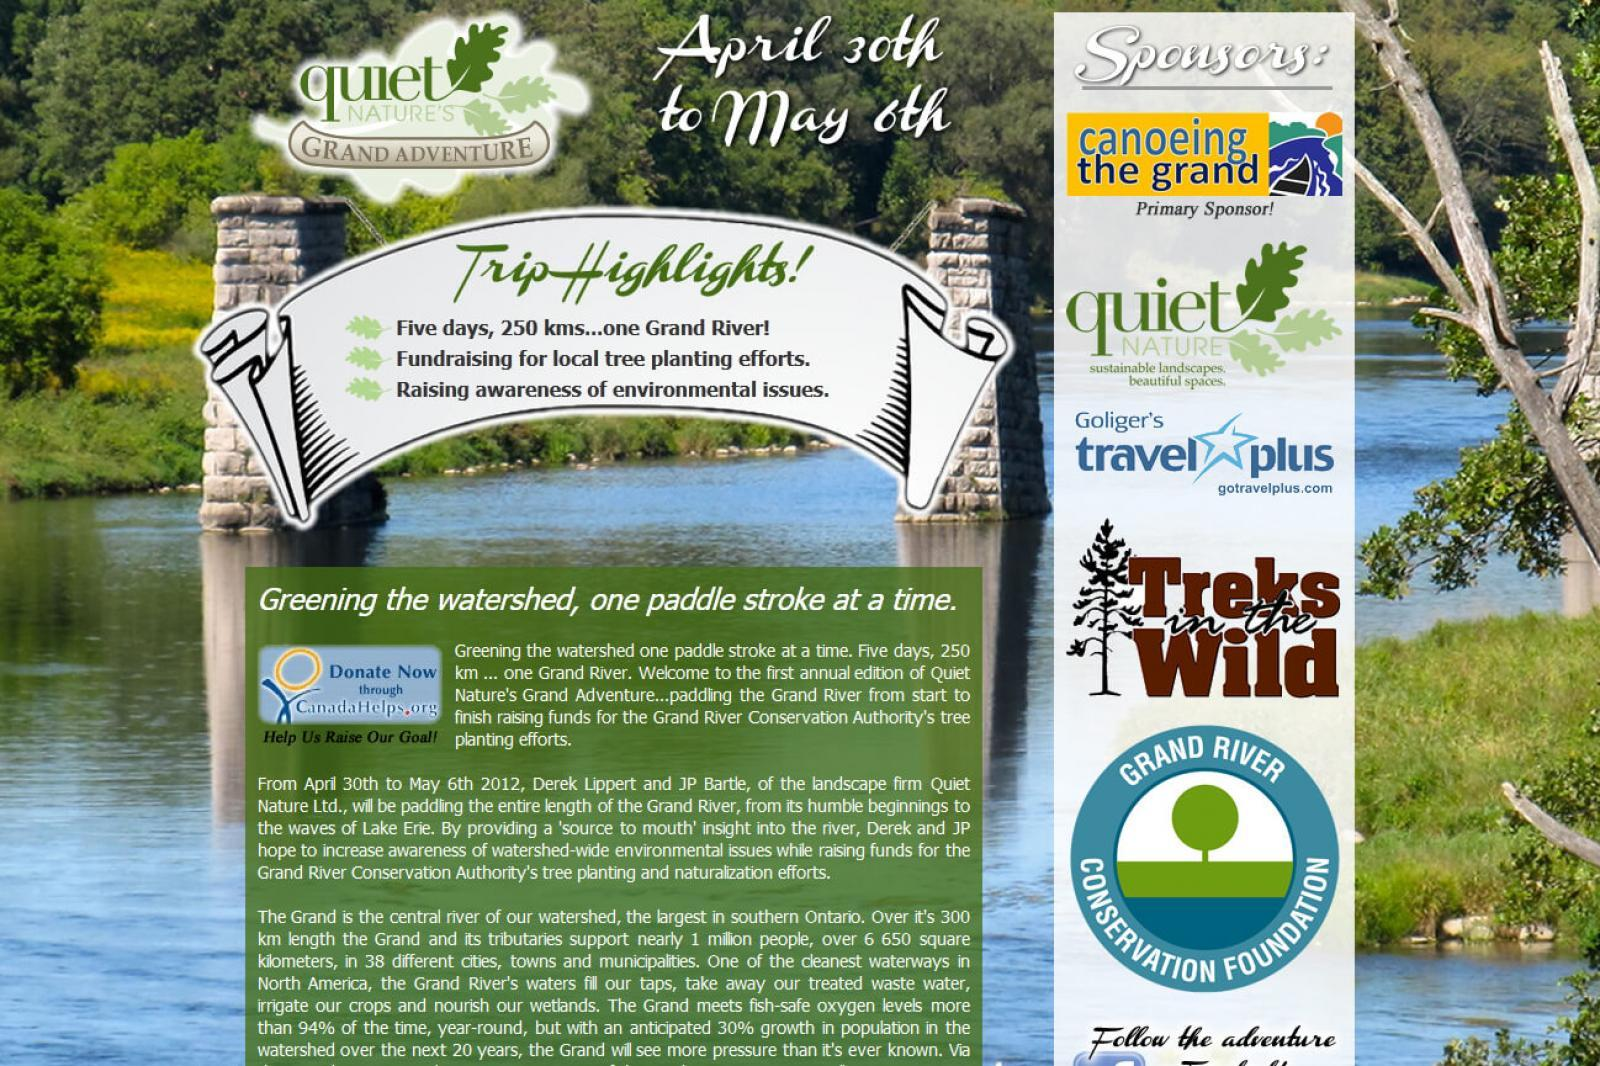 Quiet Nature's Grand Adventure website has lots of information and the opportunity to pledge towards fund-raising canoe trip down the Grand River.